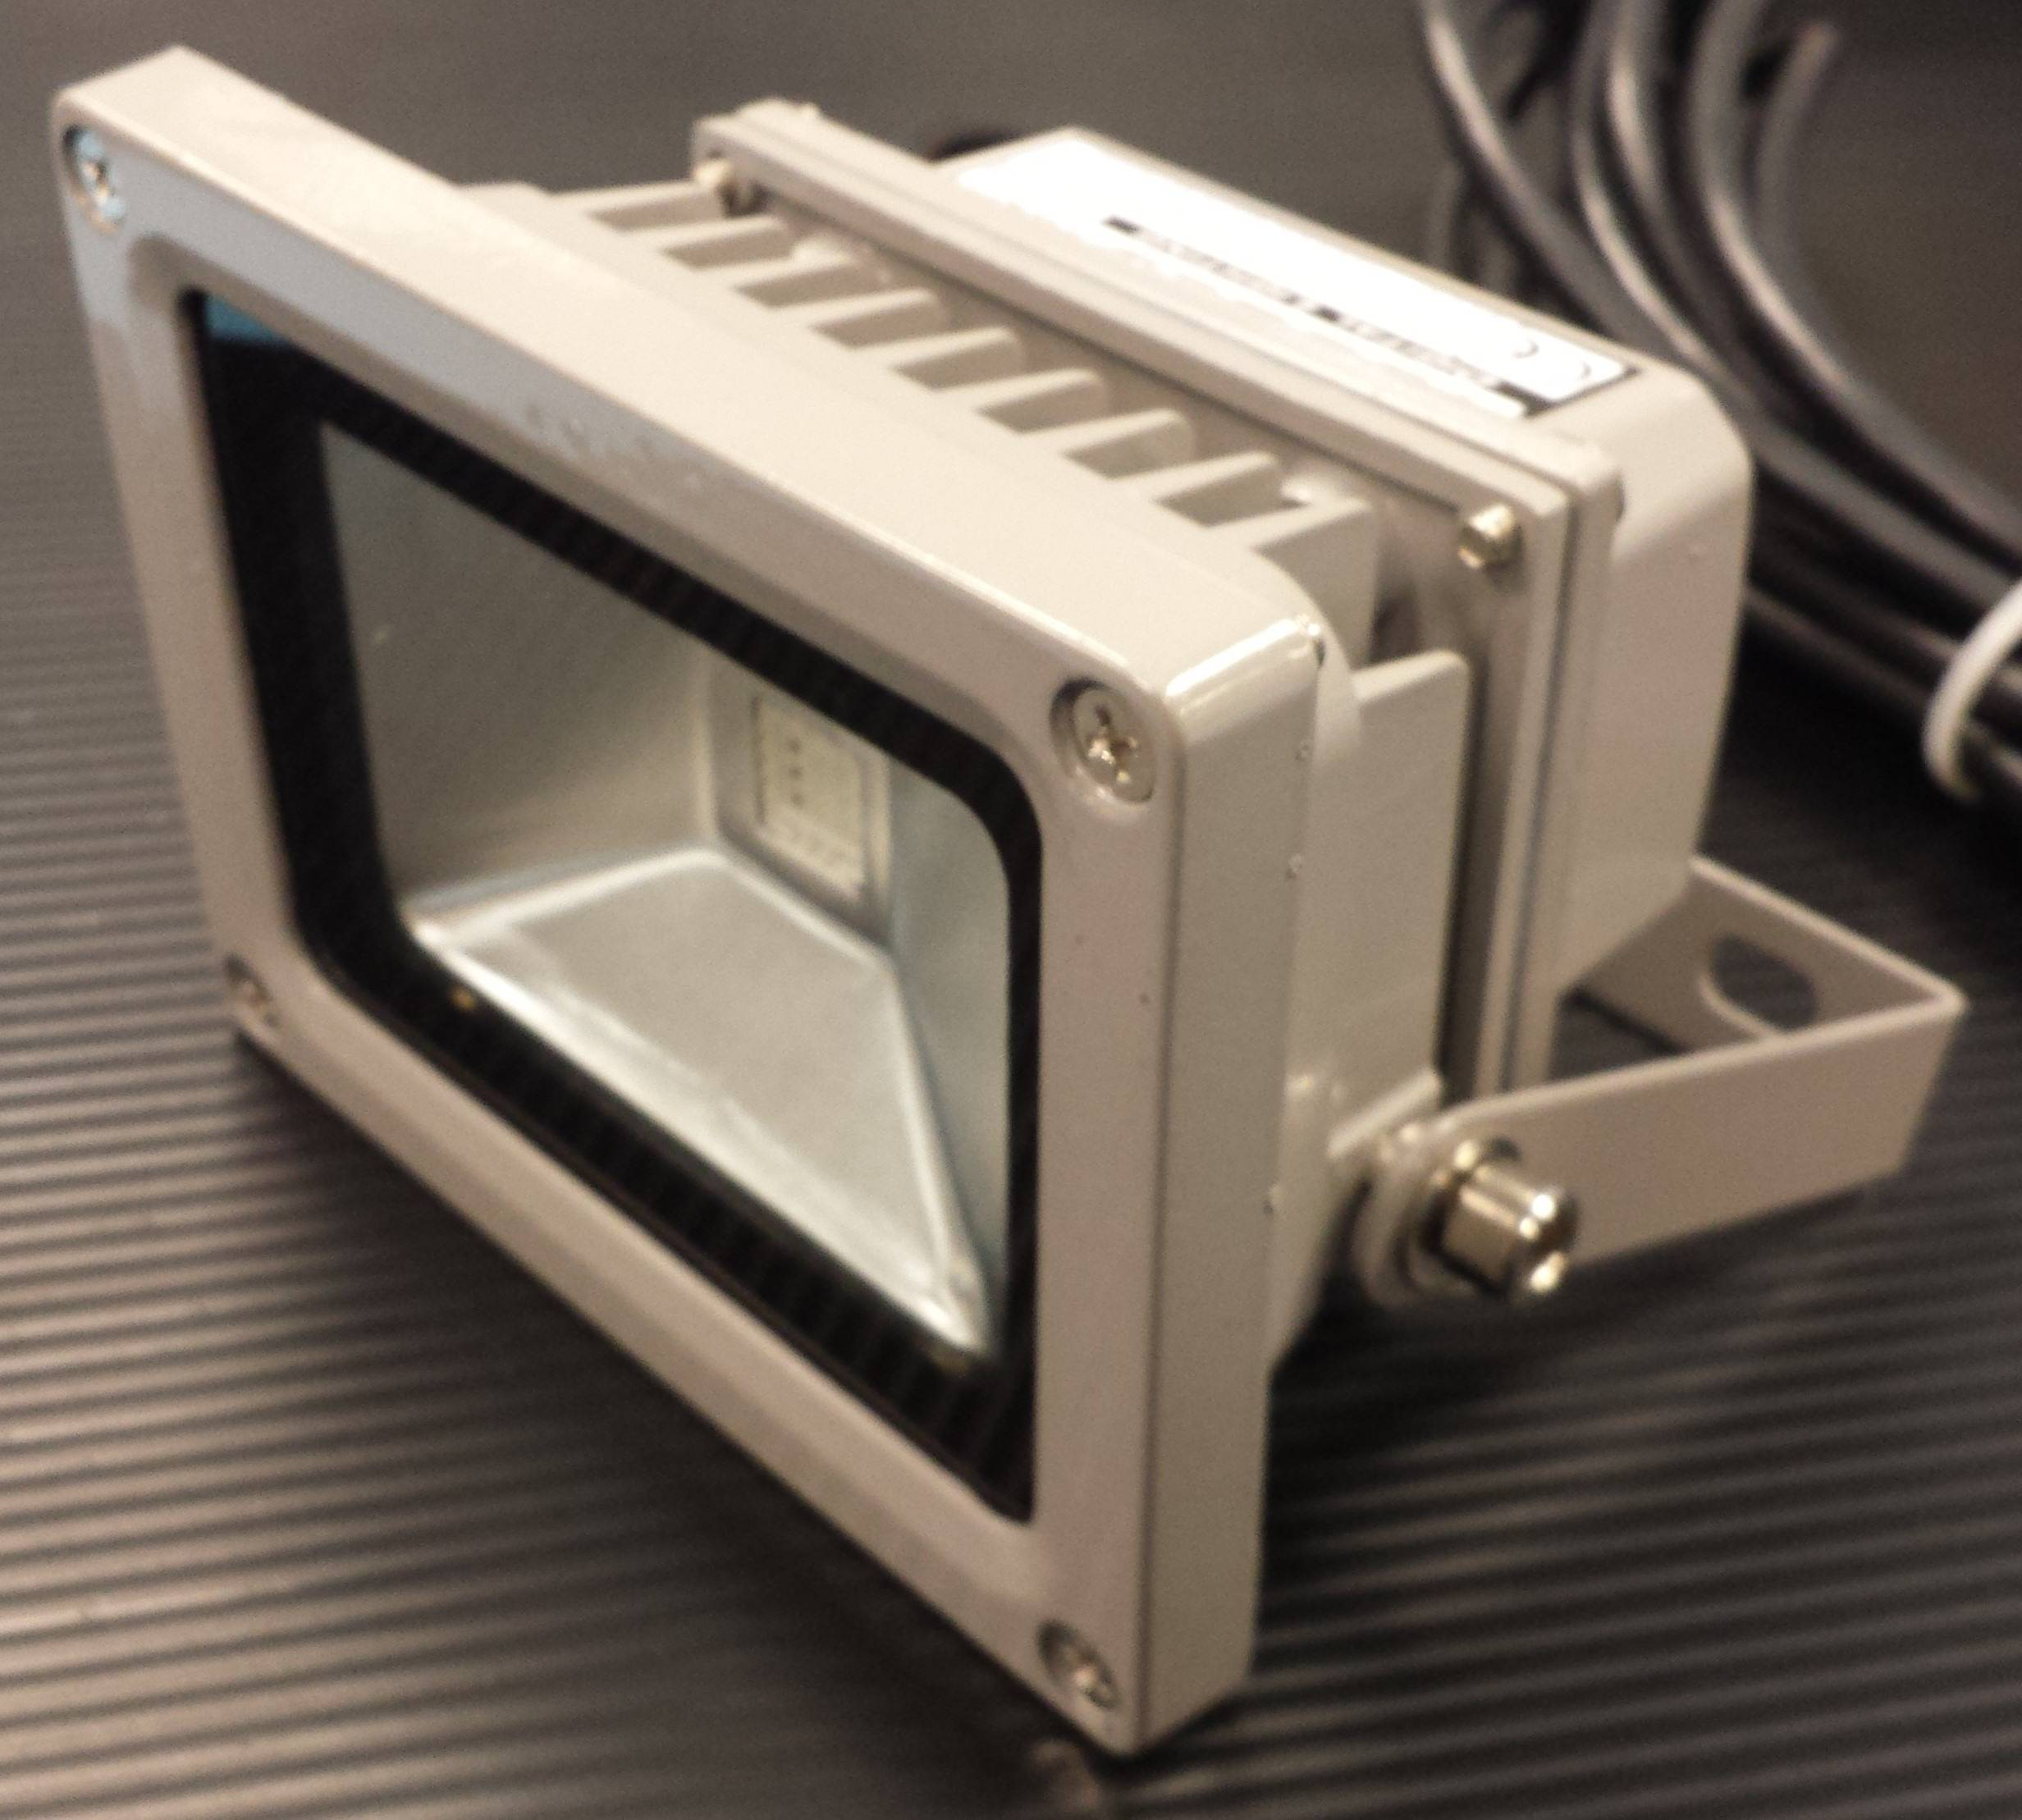 ICELED 10 Watt RGB Flood Light